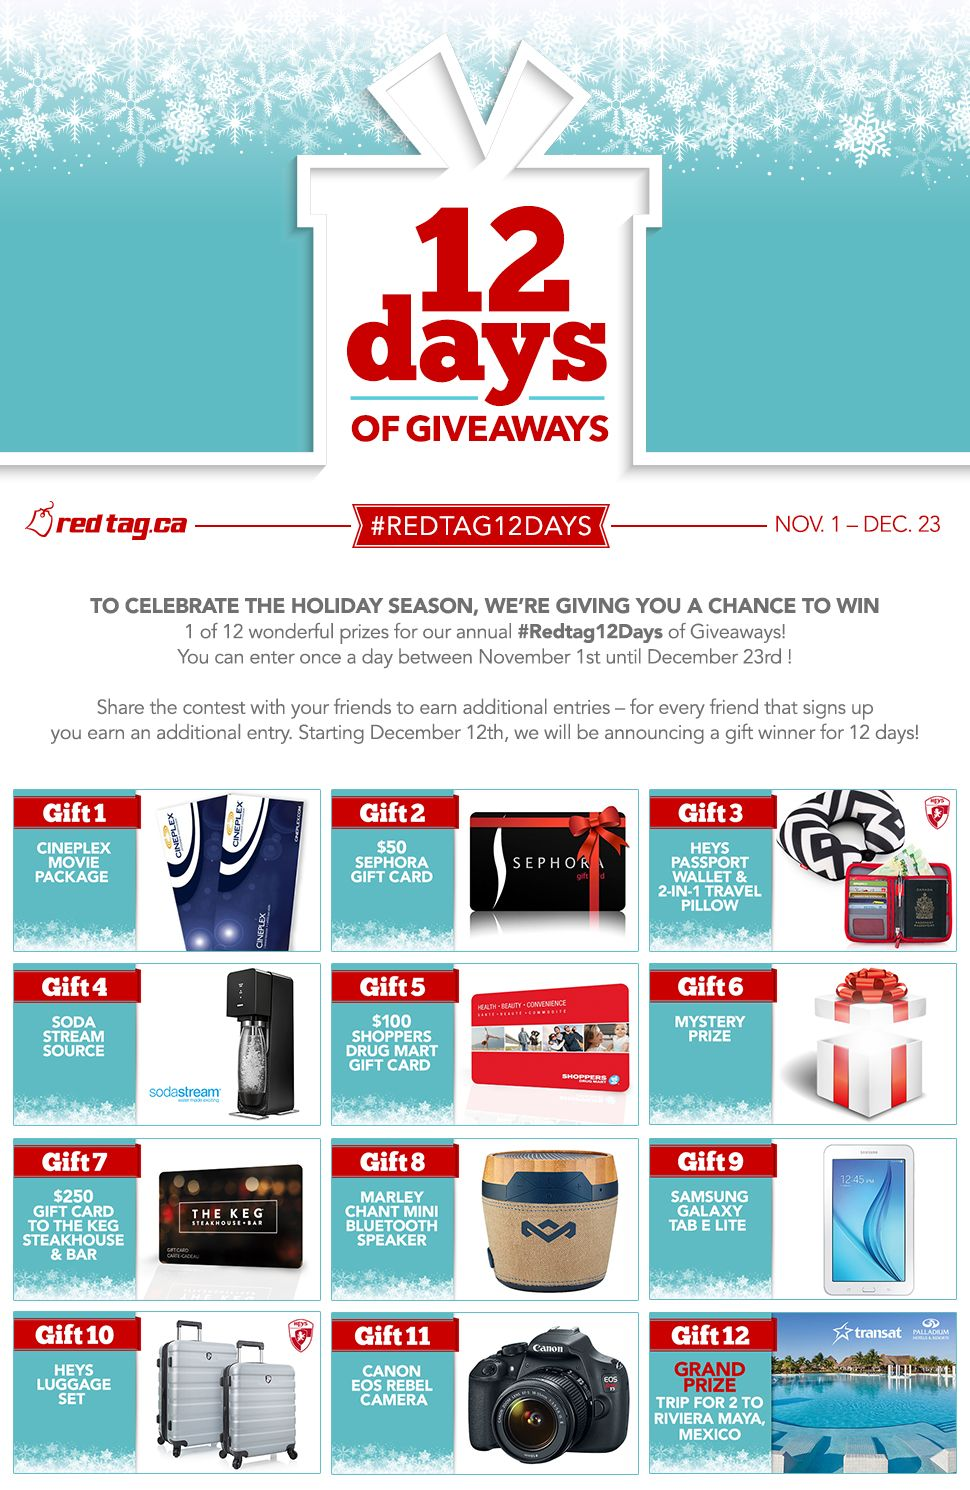 wogl vacation a day giveaway enter the redtag ca 12 days of giveaways contests 3054